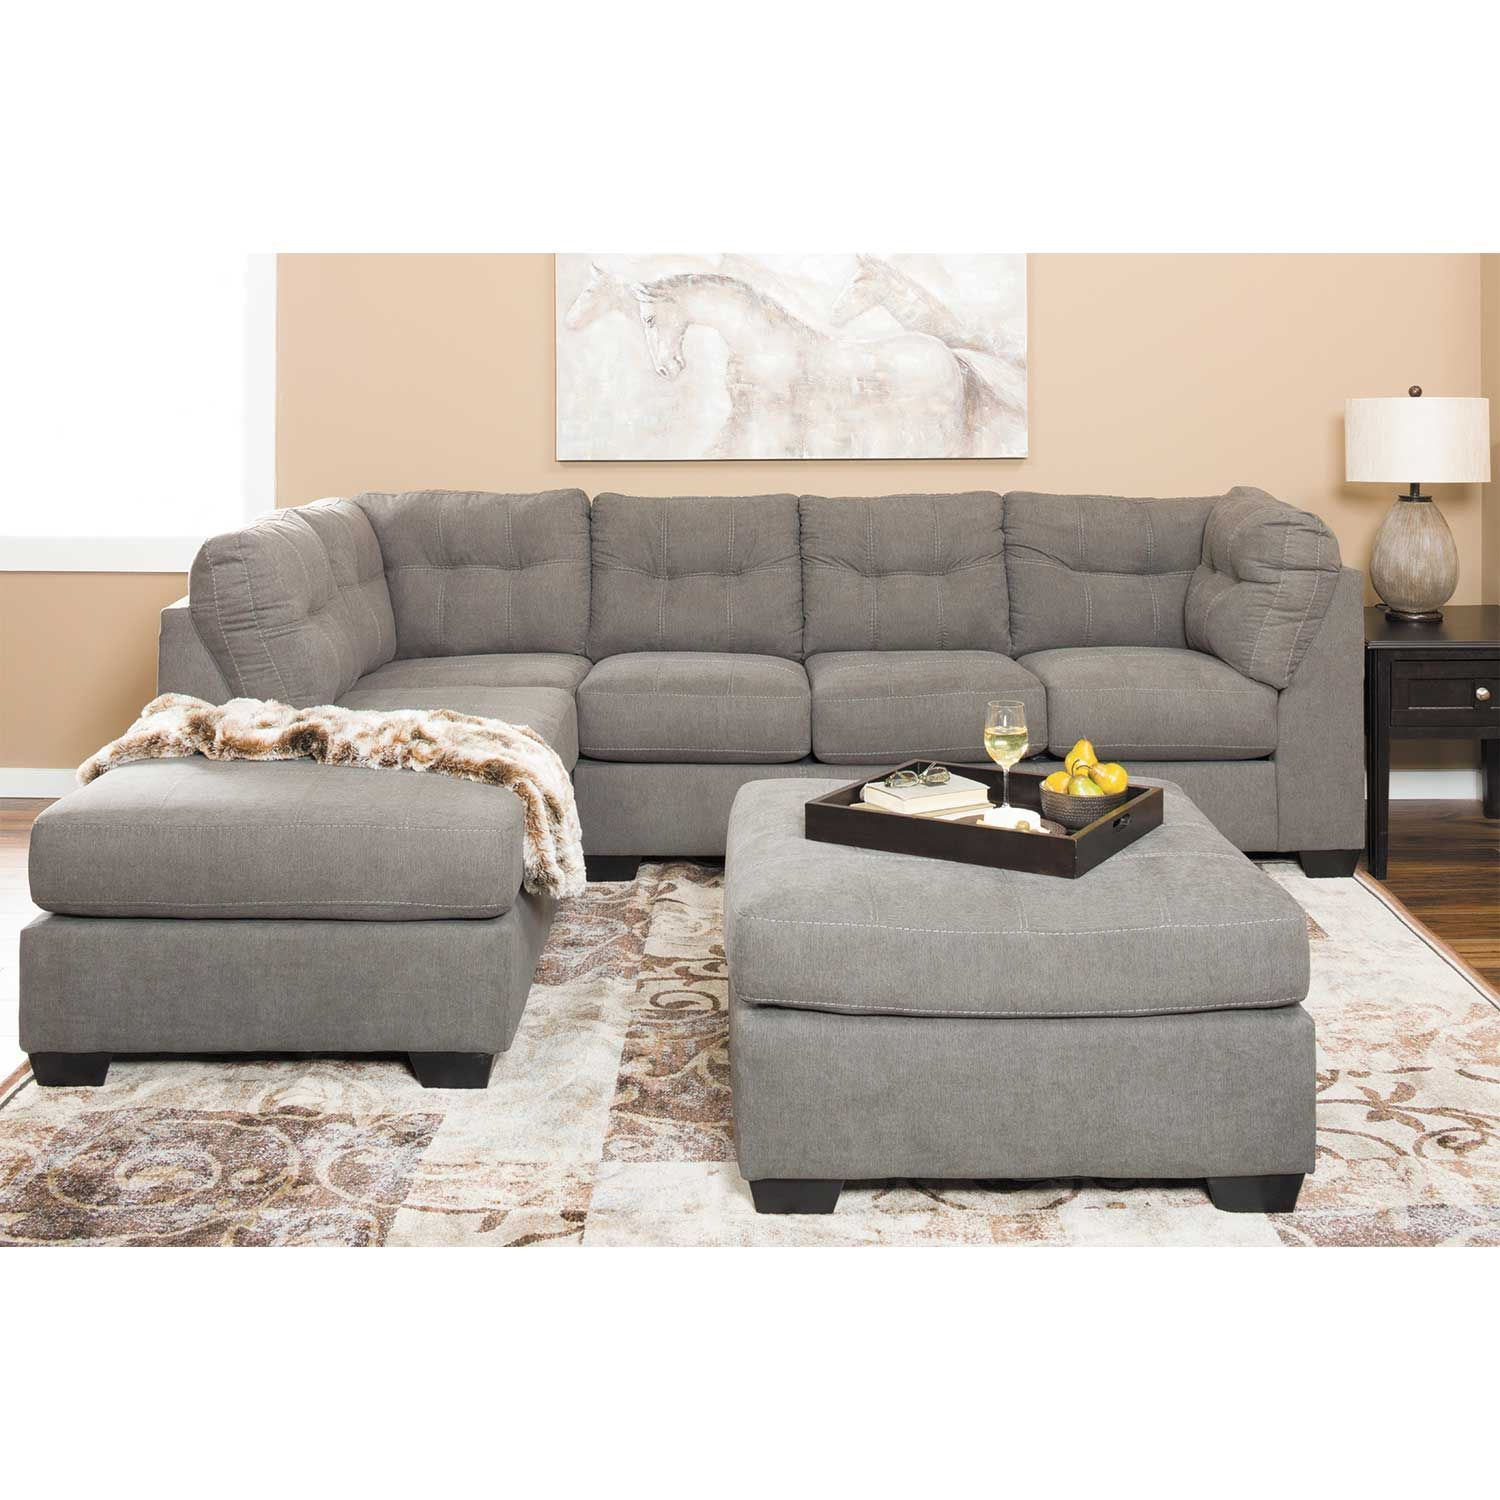 Maier Charcoal 2 Piece Sectional With Raf Chaise 4520017 Intended For Evan 2 Piece Sectionals With Raf Chaise (View 1 of 15)